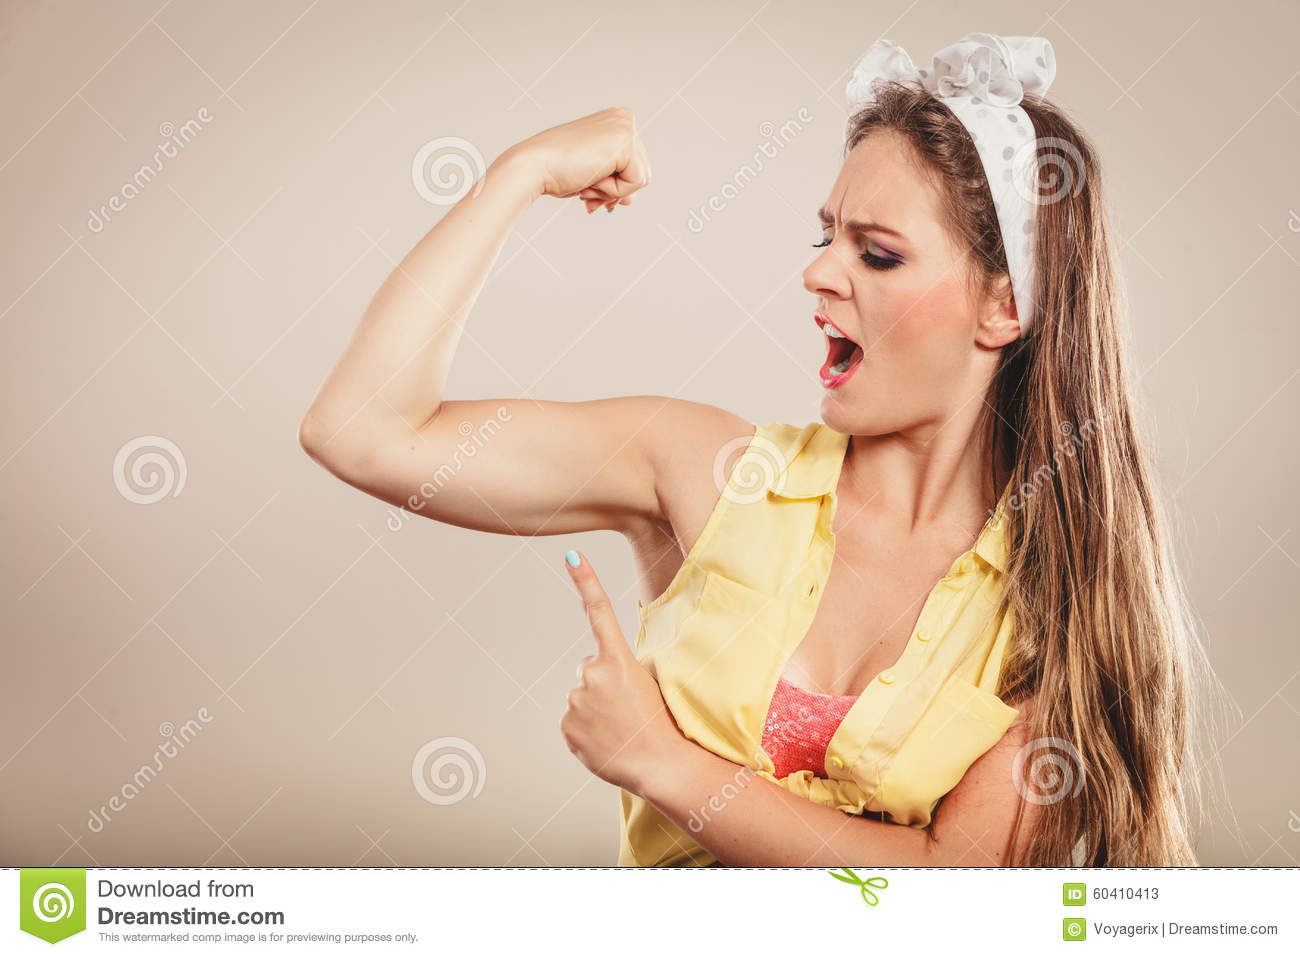 Young girls showing muscles